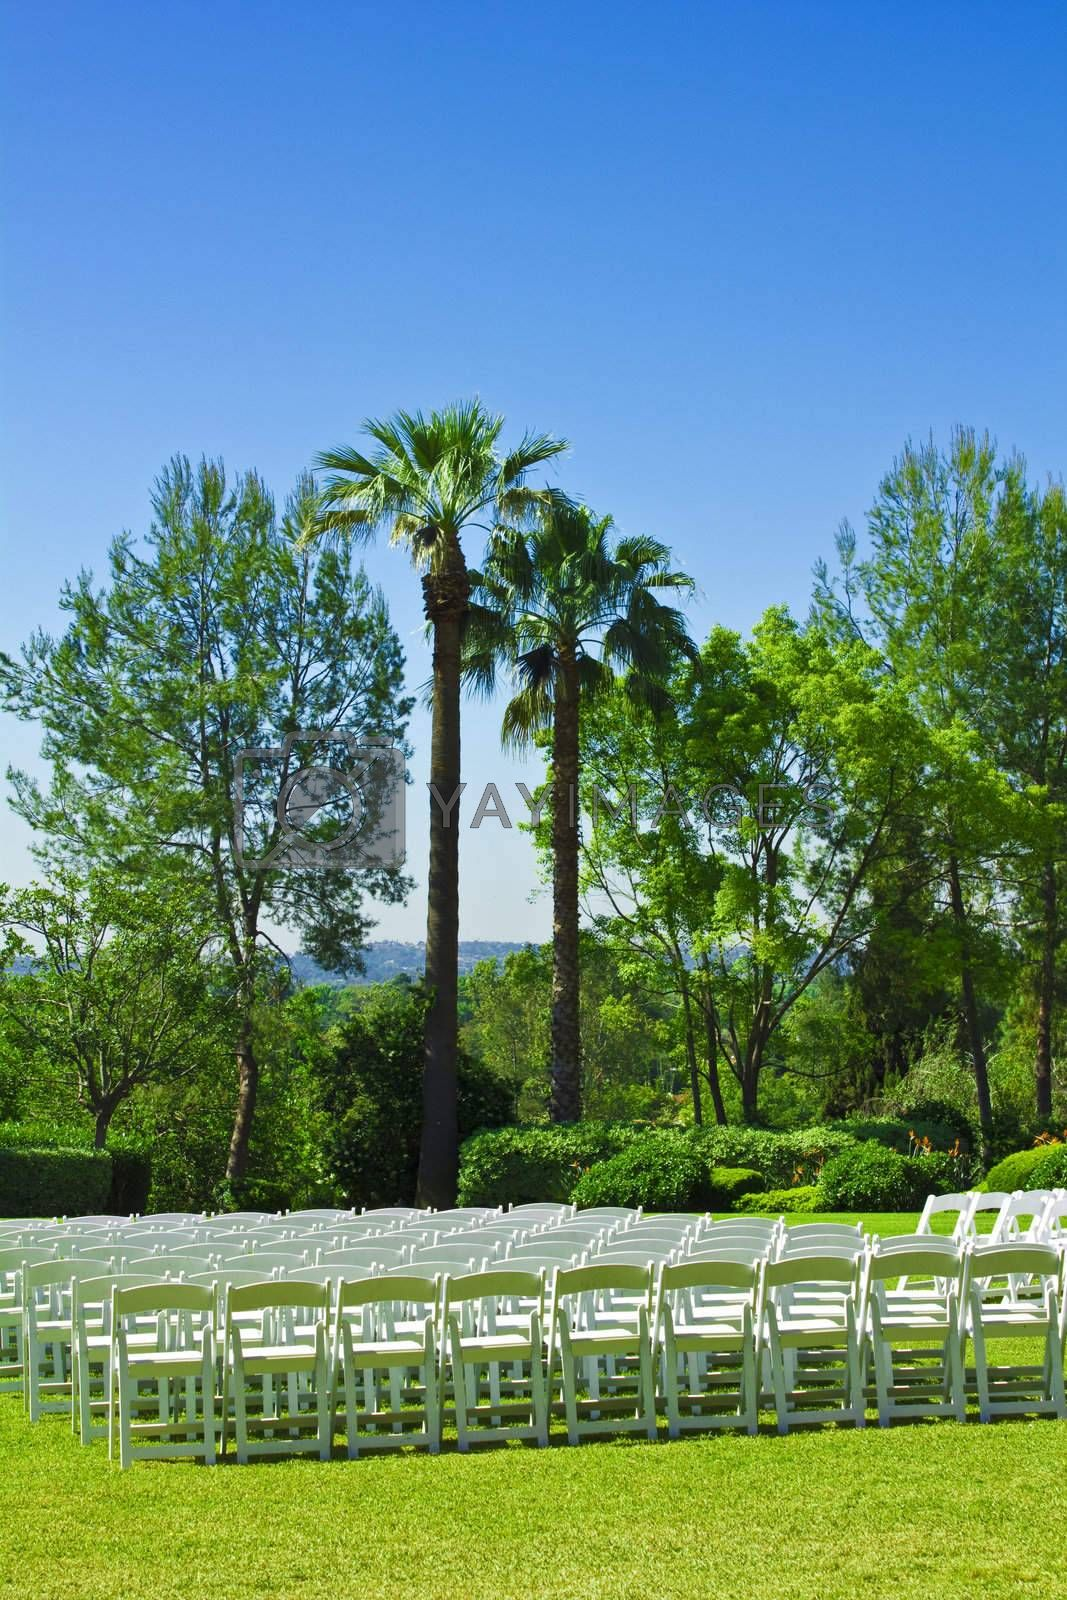 An image of a rows of white chairs in a park setting.